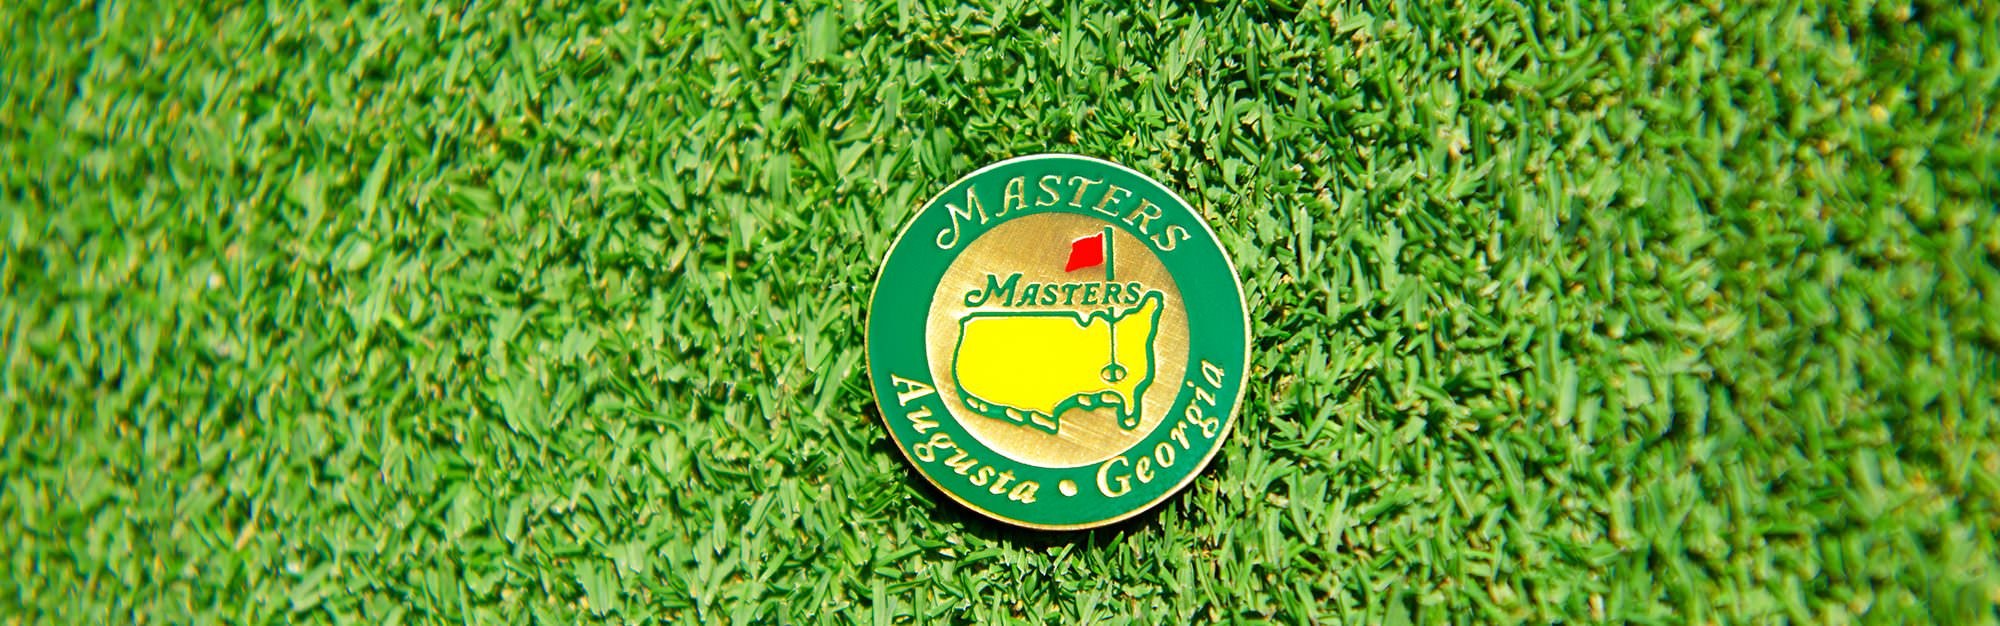 Masters tee times